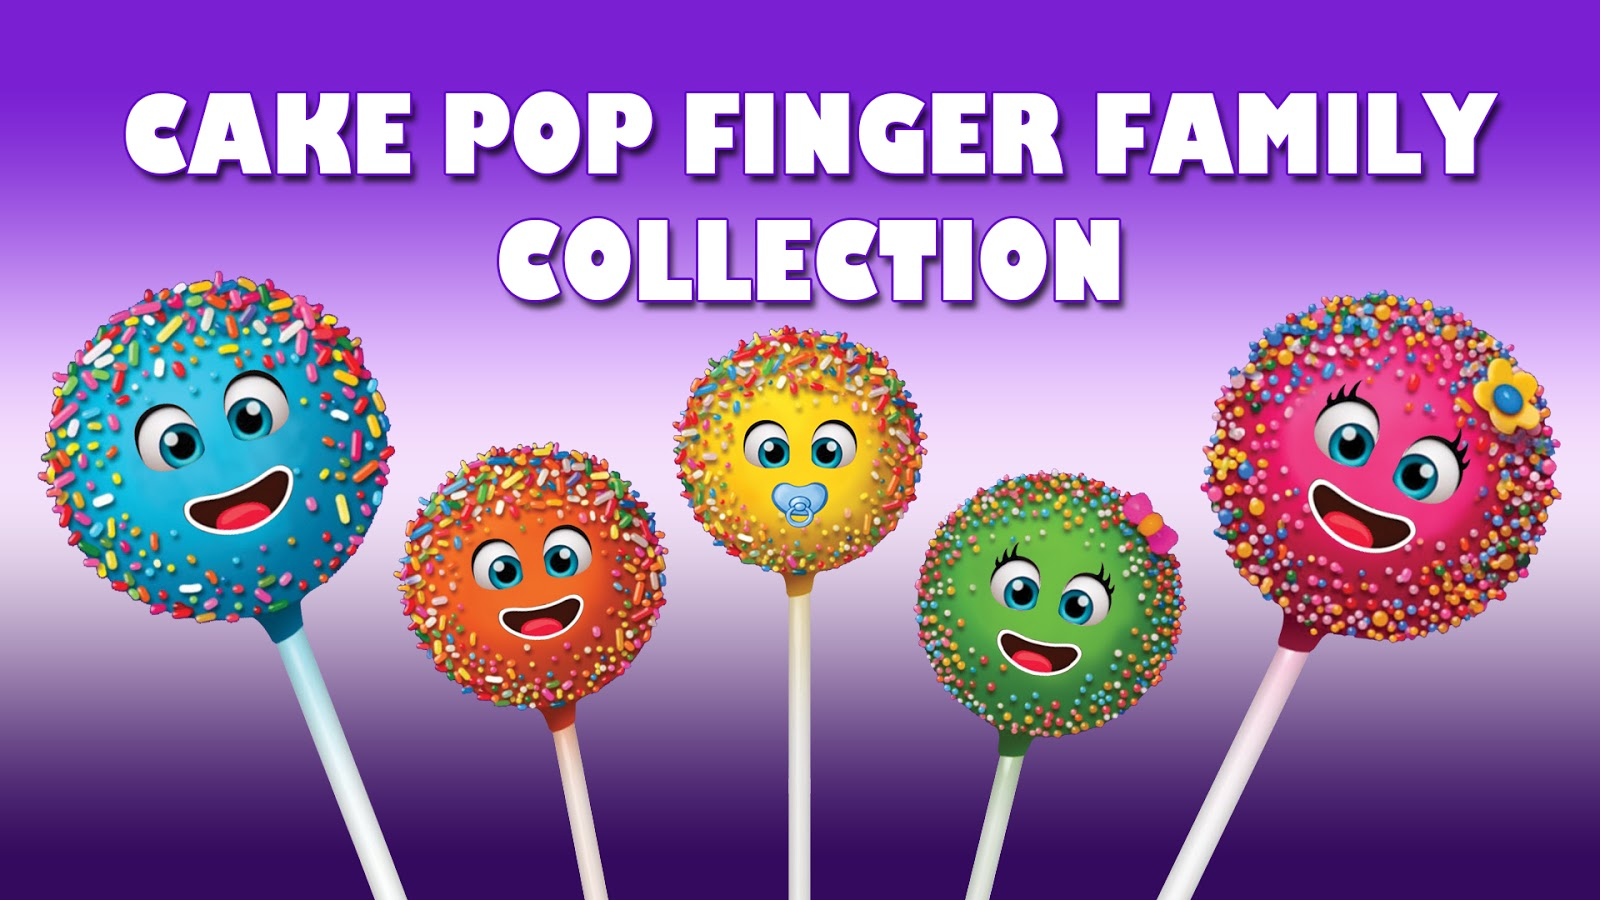 Finger family collection 7 finger family songs - Cake Making Is No Longer A Complicated Procedure While At One Time Considerable Labor Went Into Cake Making Particularly The Whisking Of Egg Foams